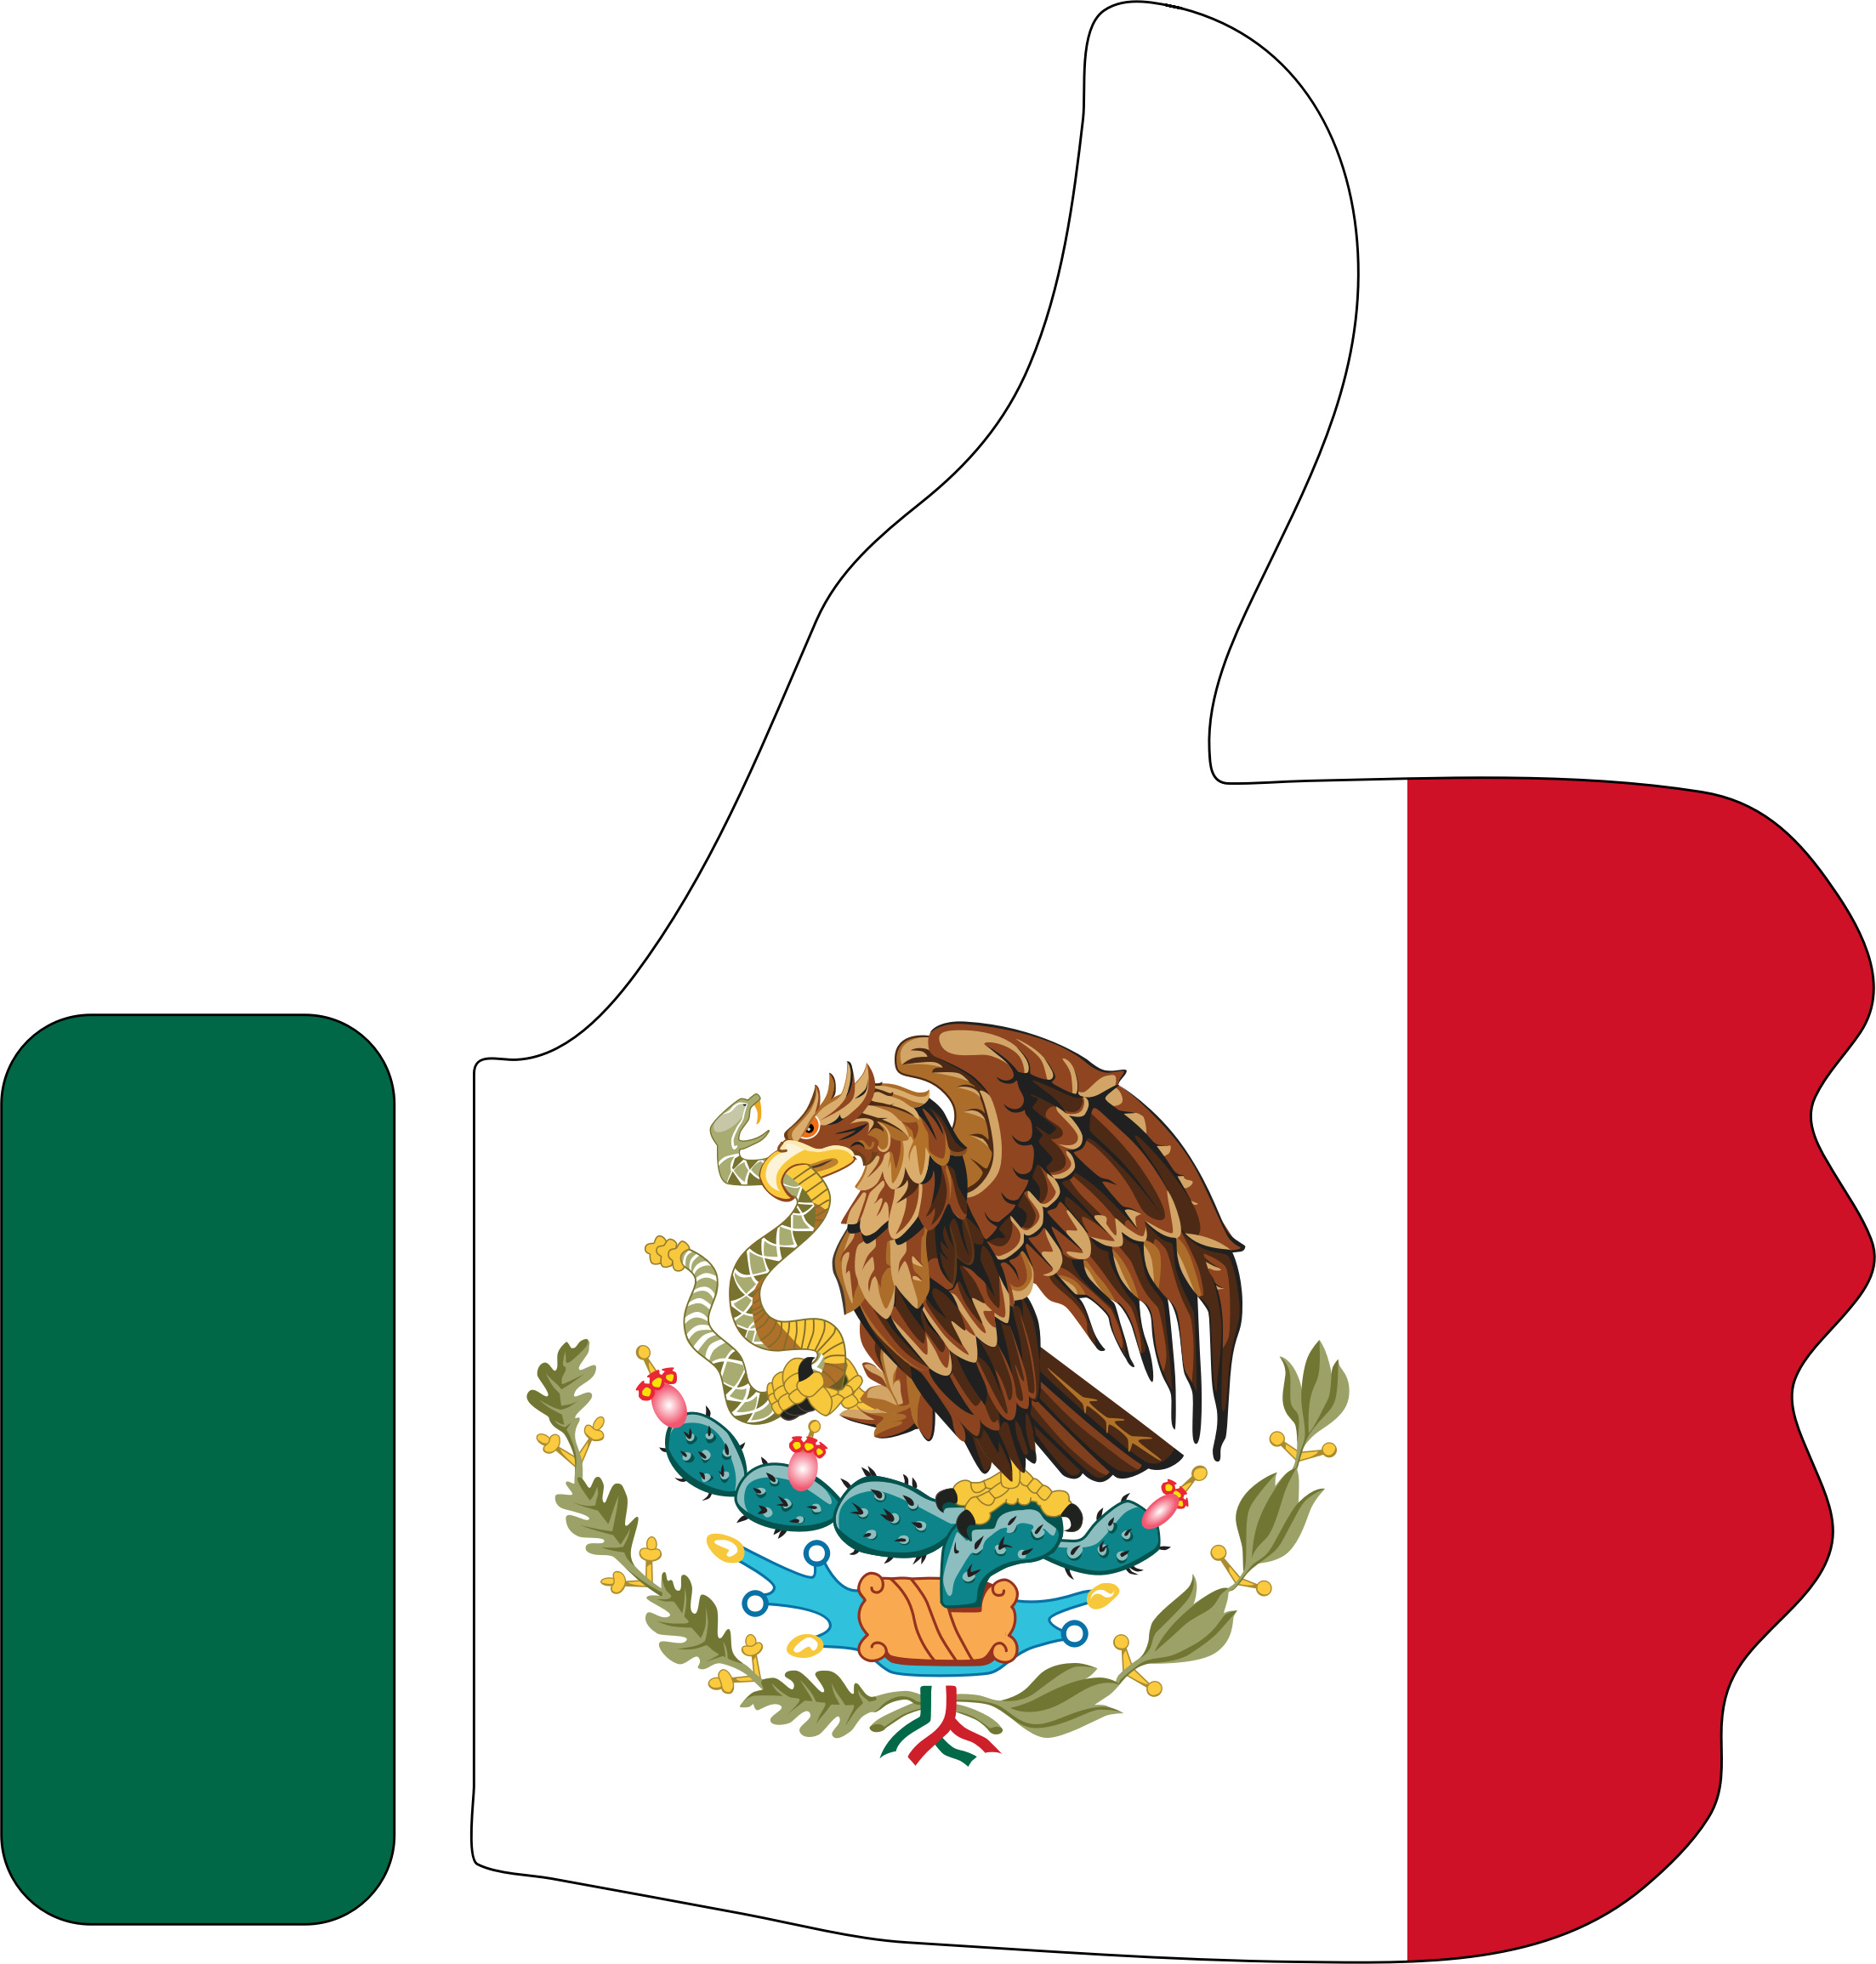 Thumbs Up Mexico With Stroke by GDJ